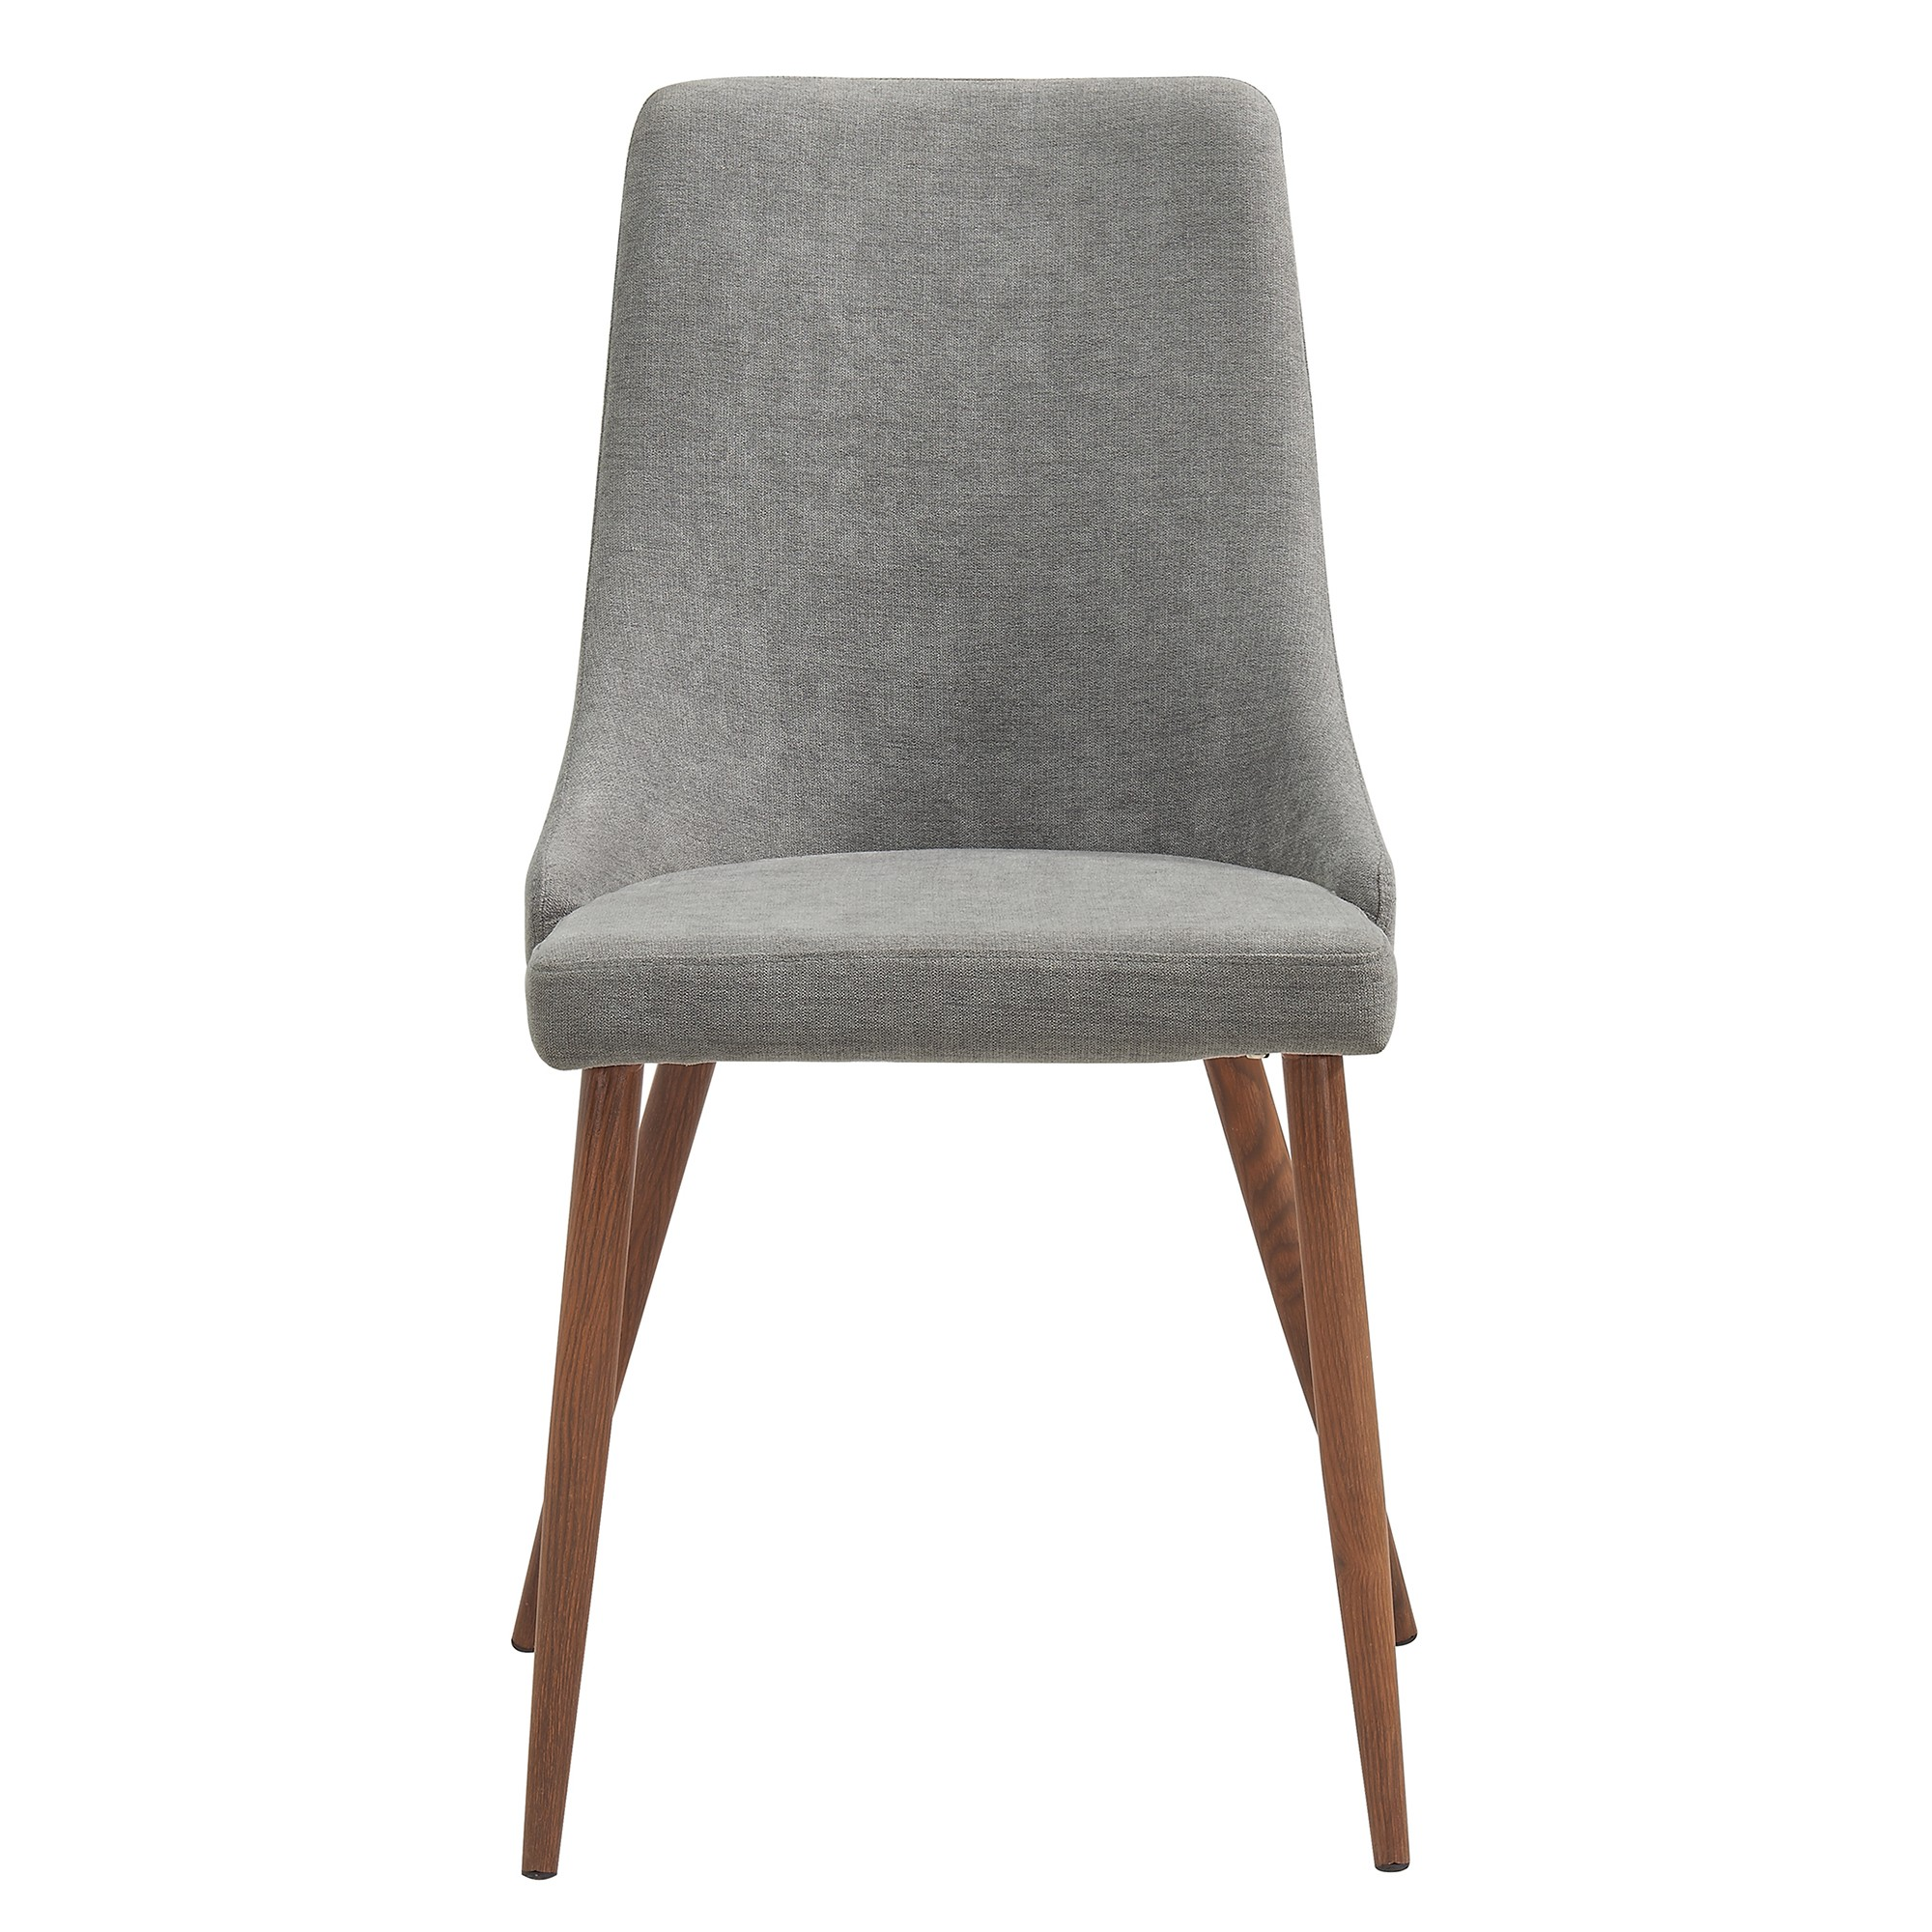 Cora Side Chair in Grey